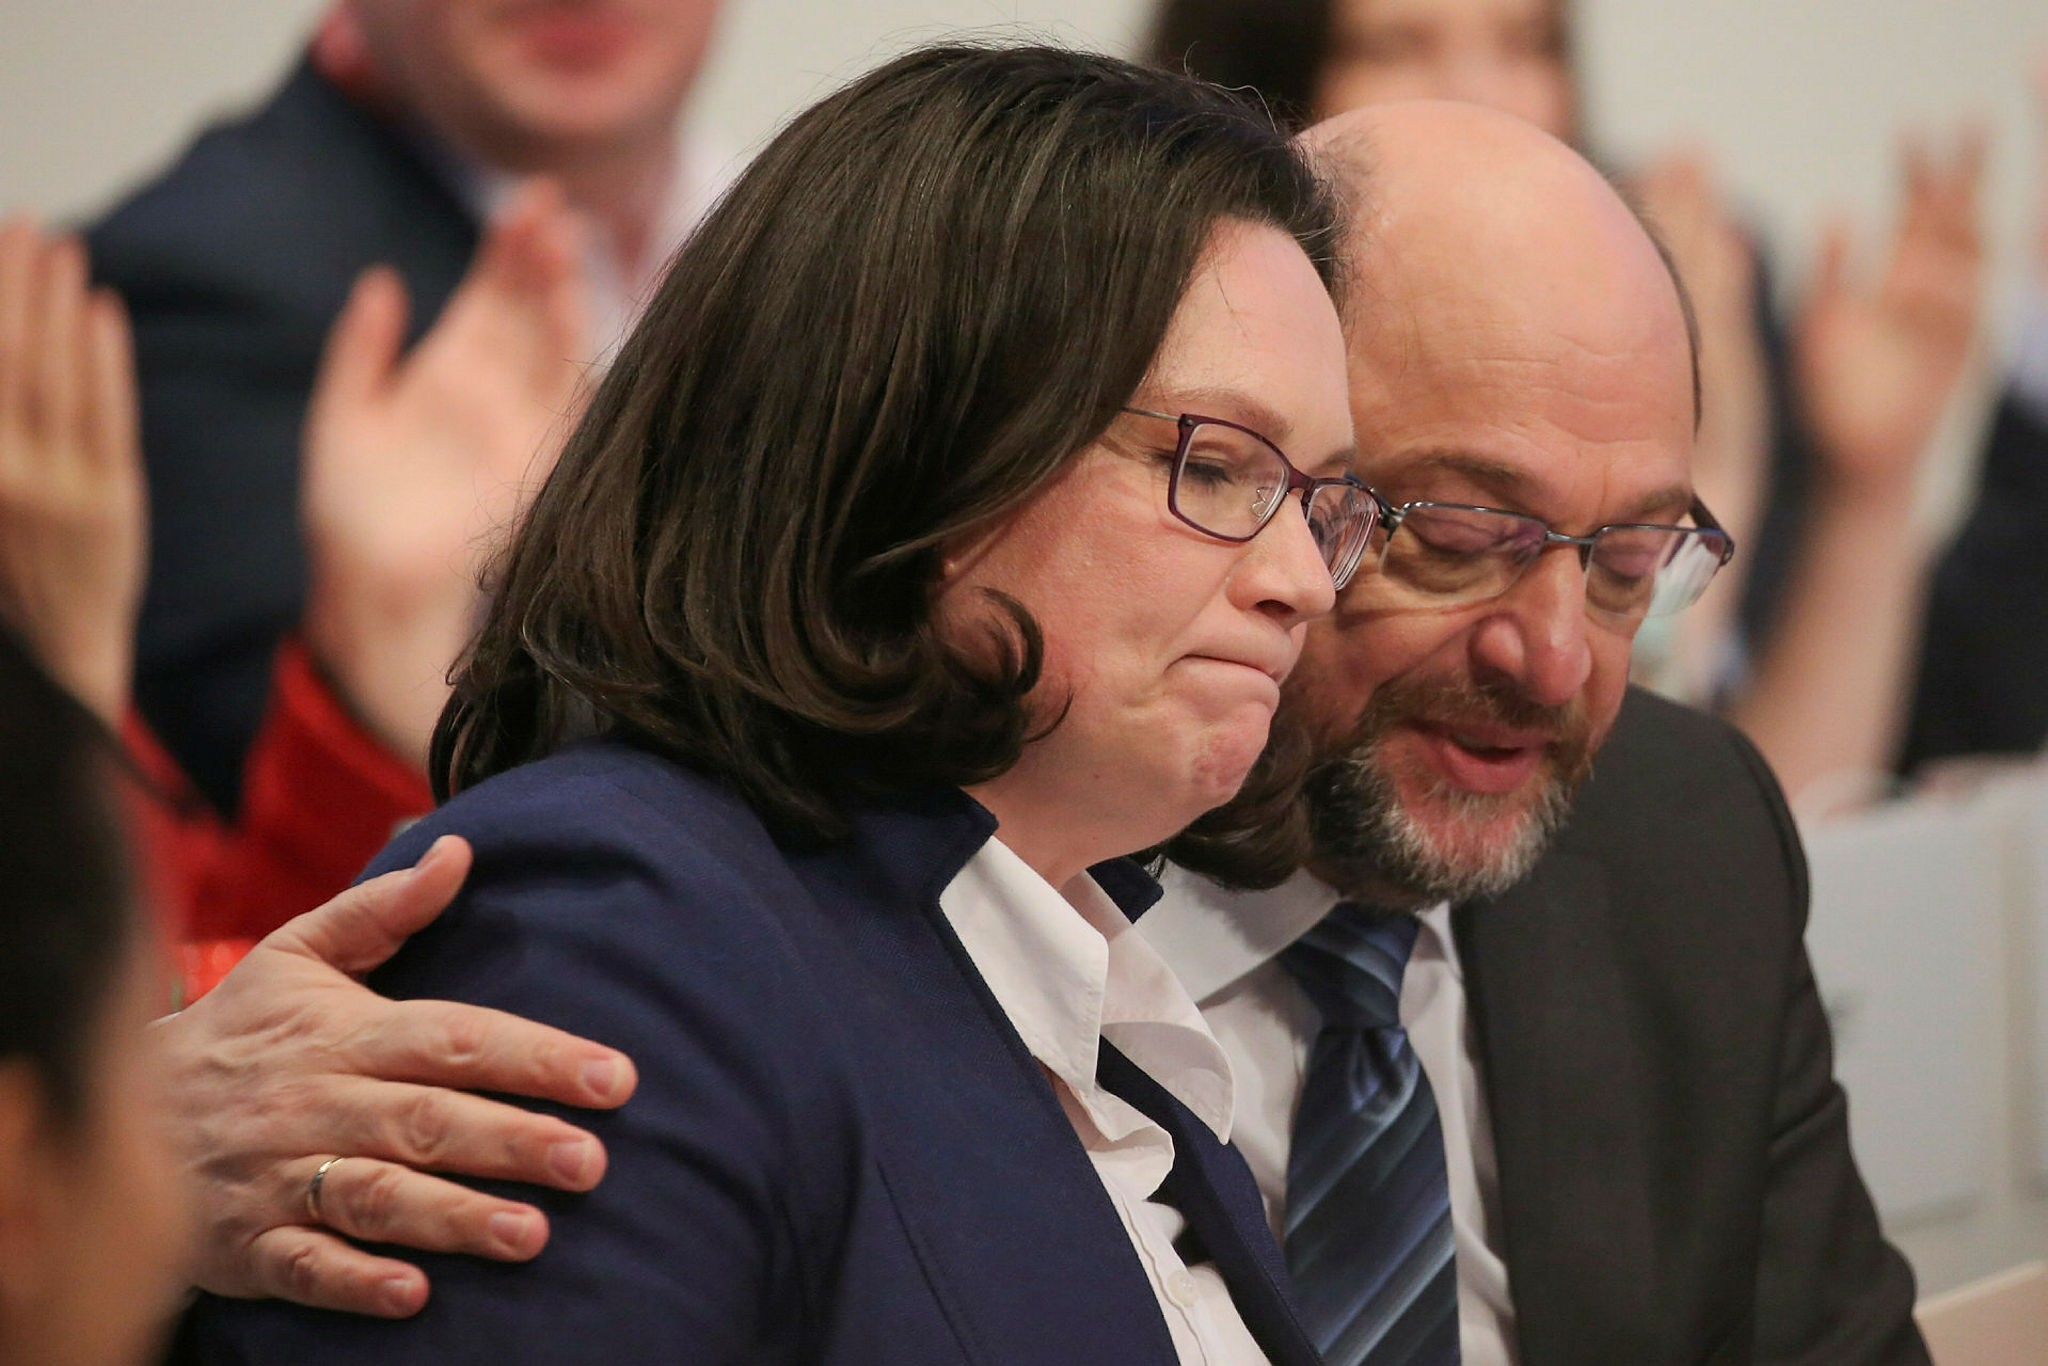 The leader of the Social Democratic Partyu2019s parliamentary faction, Andrea Nahles (L) and party leader Martin Schulz attend a party convention in Bonn, Jan. 21.